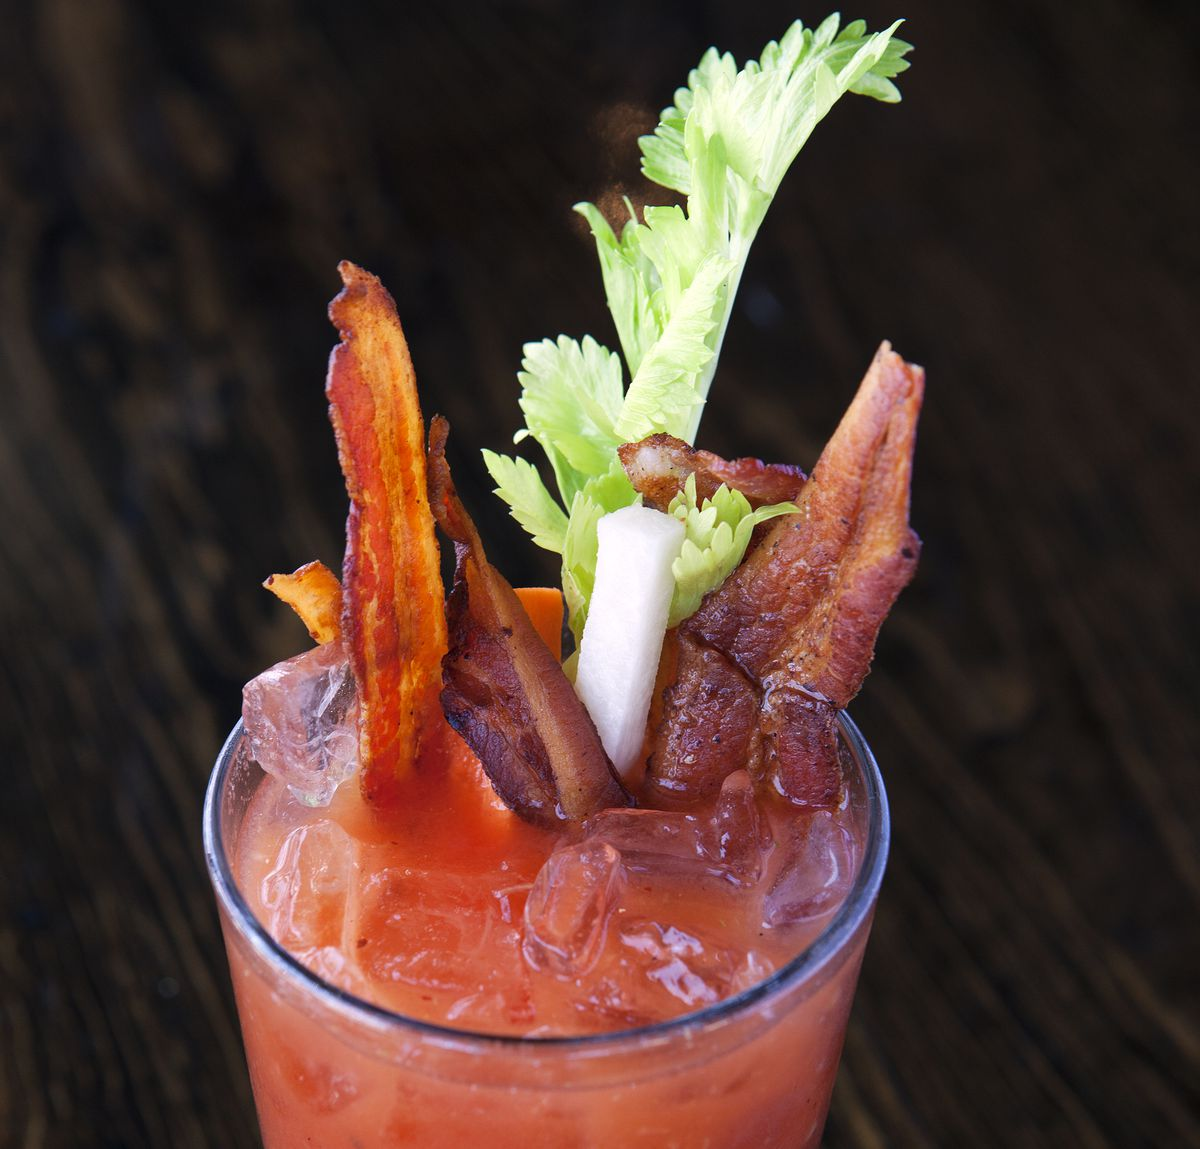 Close-up of a red liquid in a glass, with several strips of bacon also tucked in.